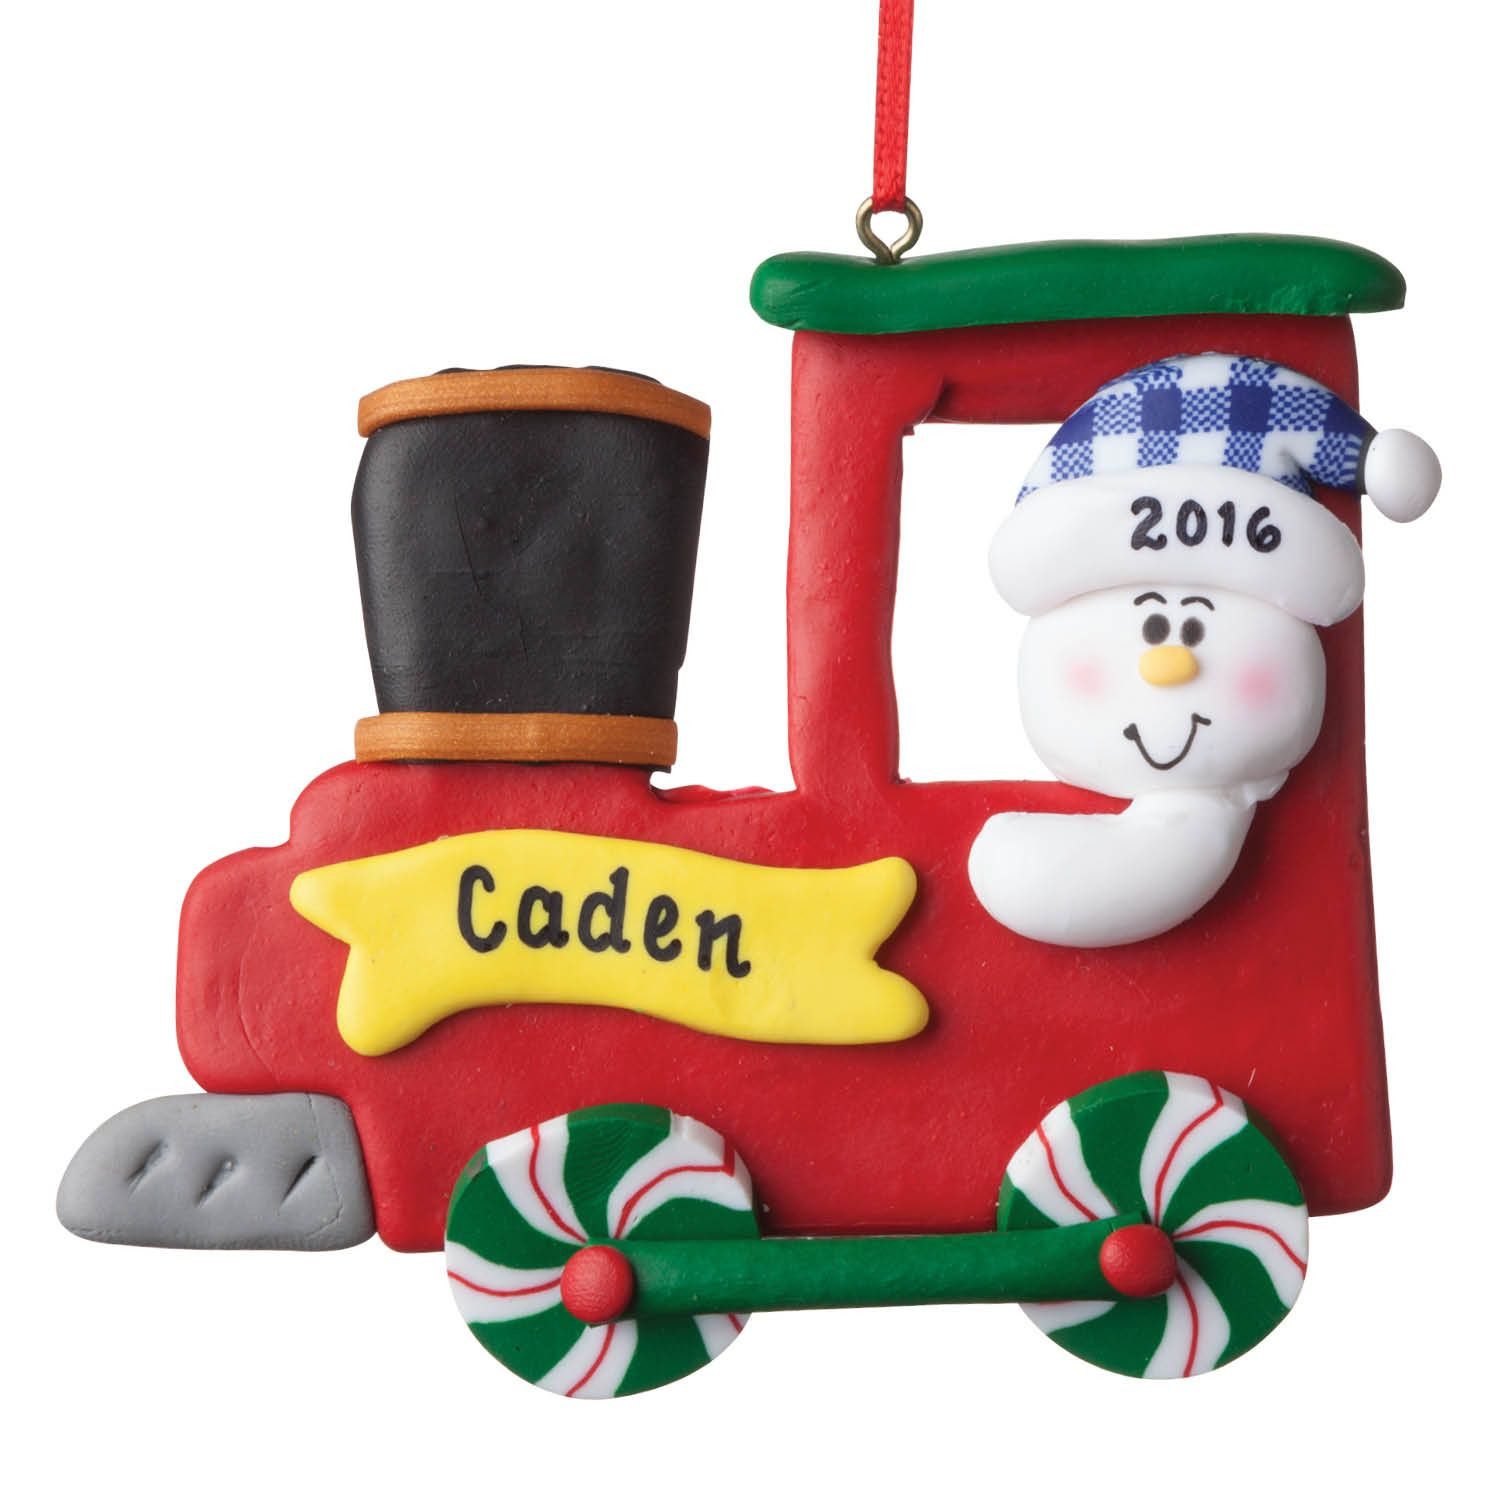 This fun personalized ornament will brighten your tree ...